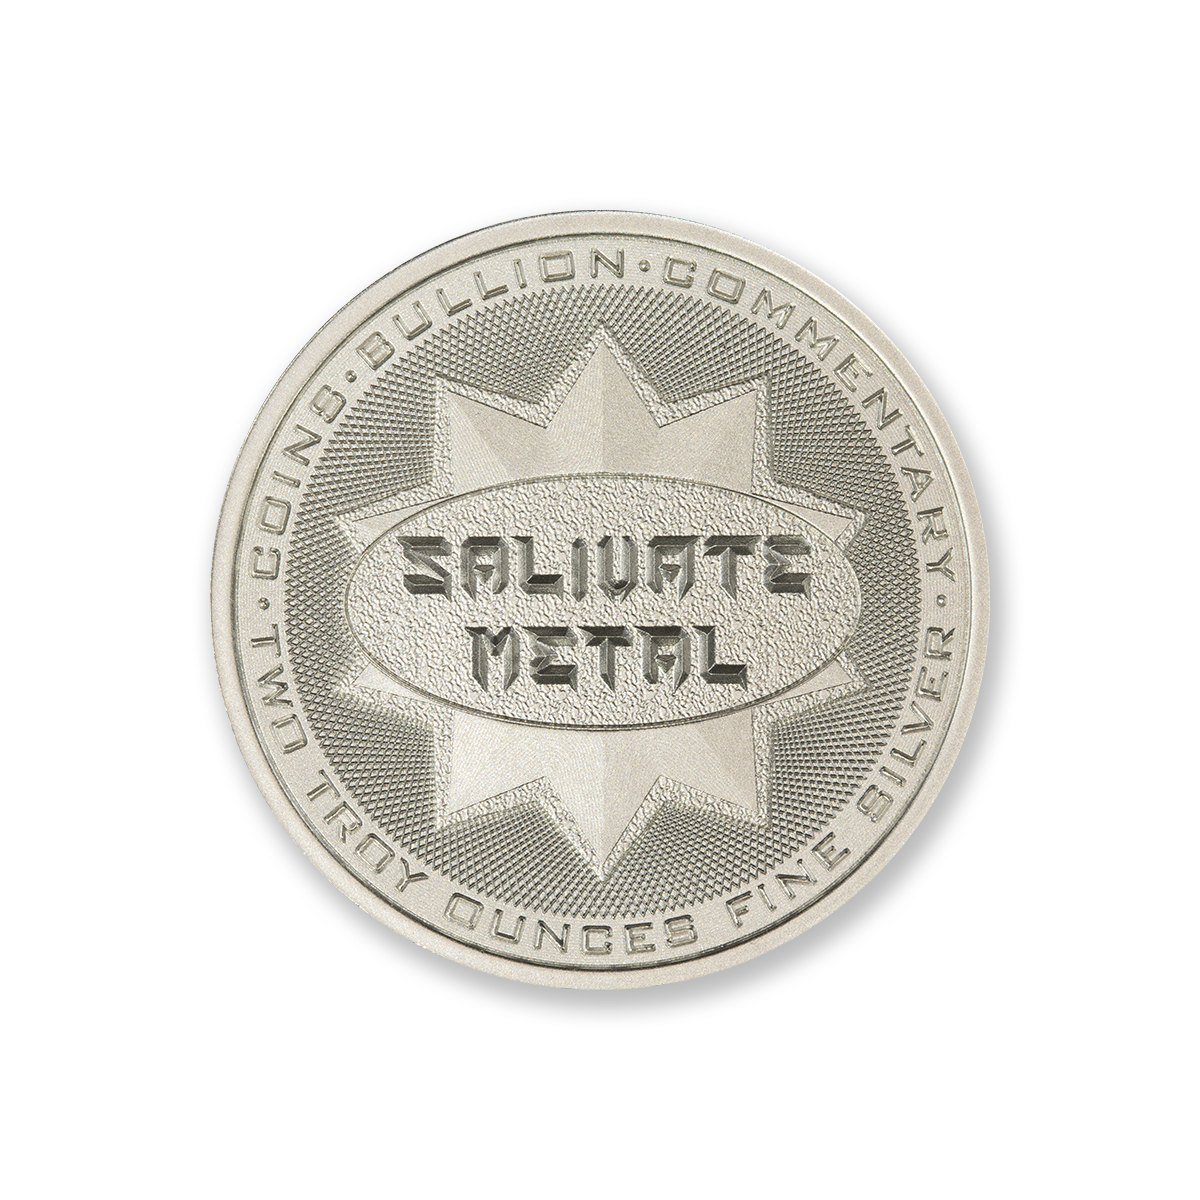 SALIVATE METAL – 2 TROY OUNCE – 39MM